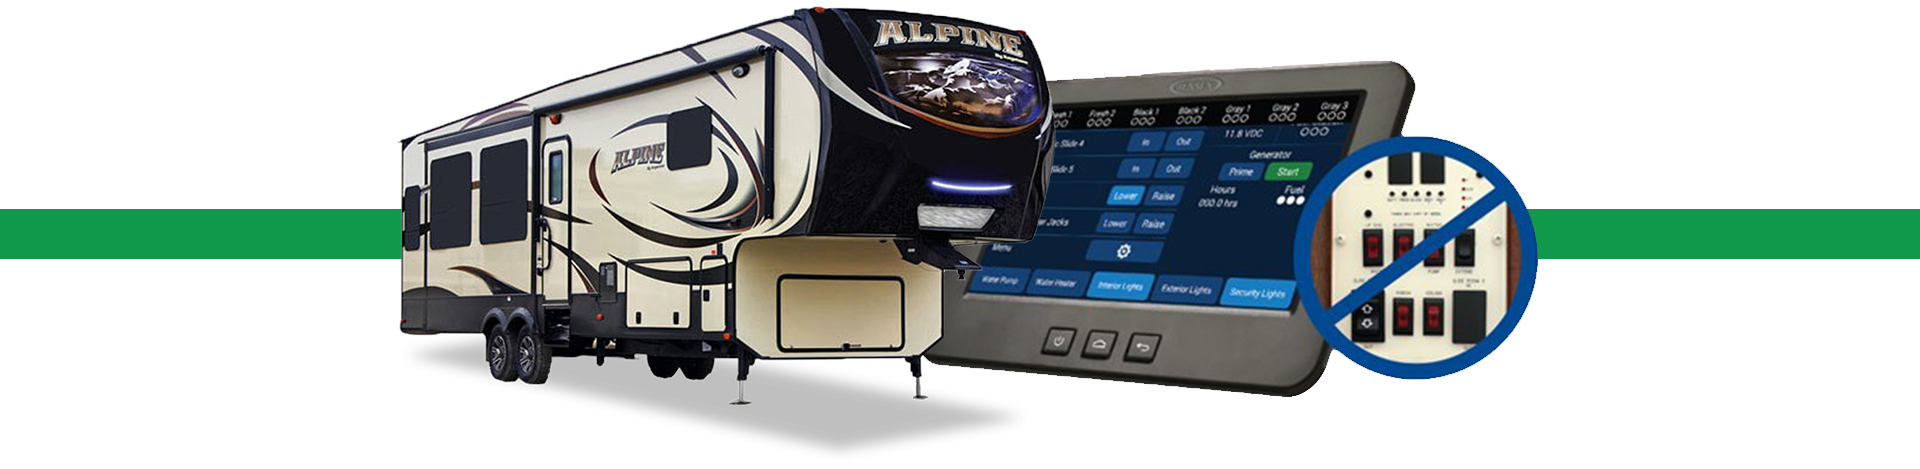 Keystone's In-Command Control System for monitoring your RV